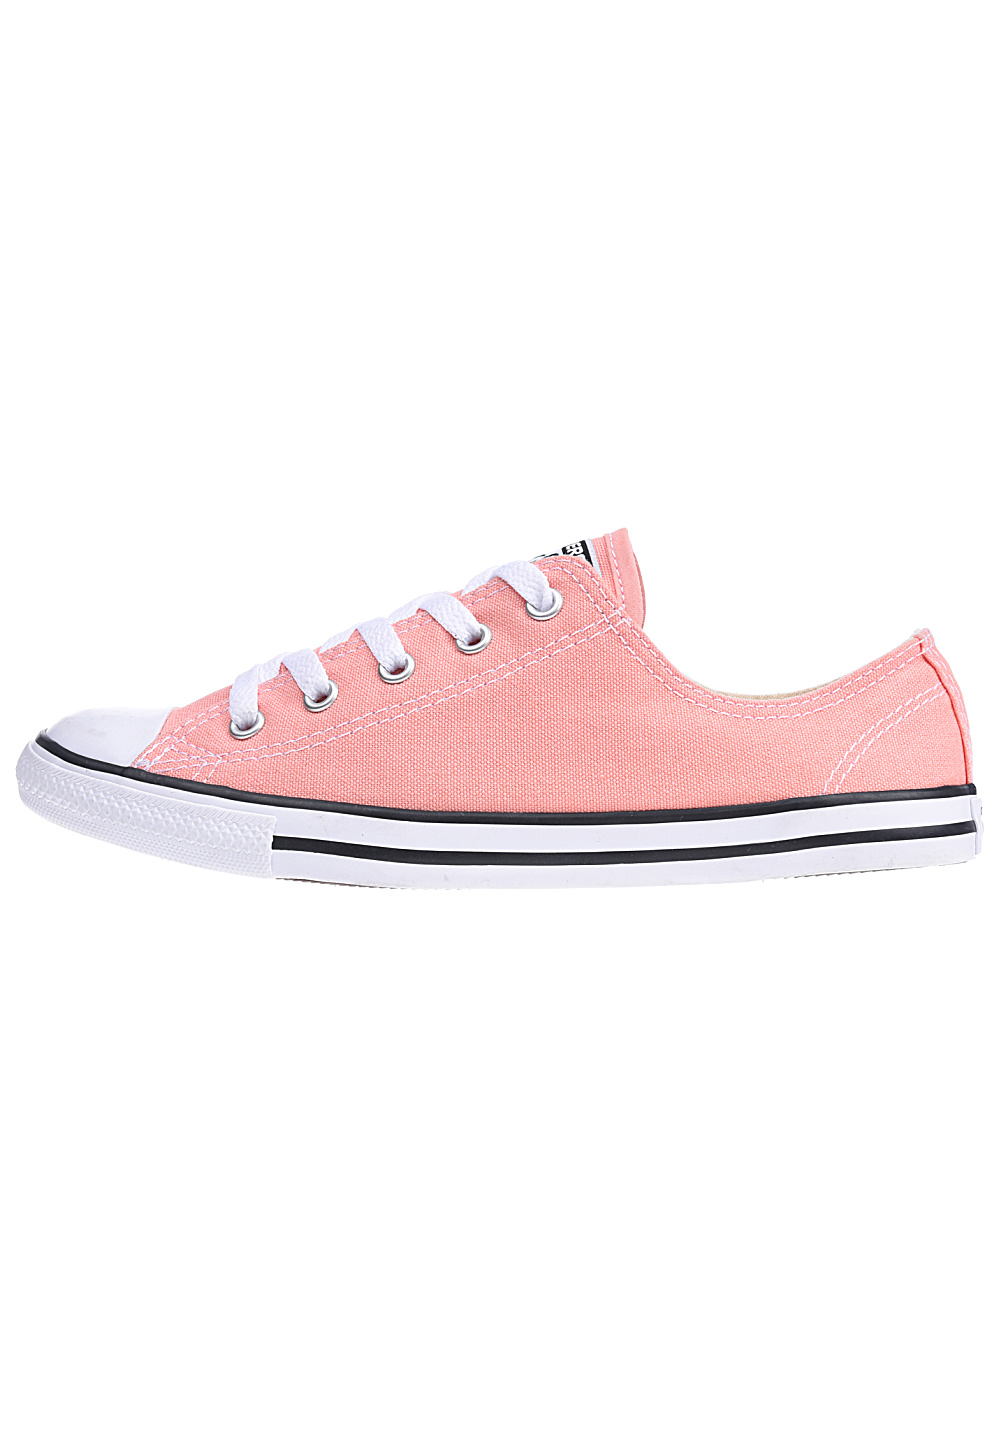 Baskets Converse Chuck Taylor All Star OX Dainty Rose